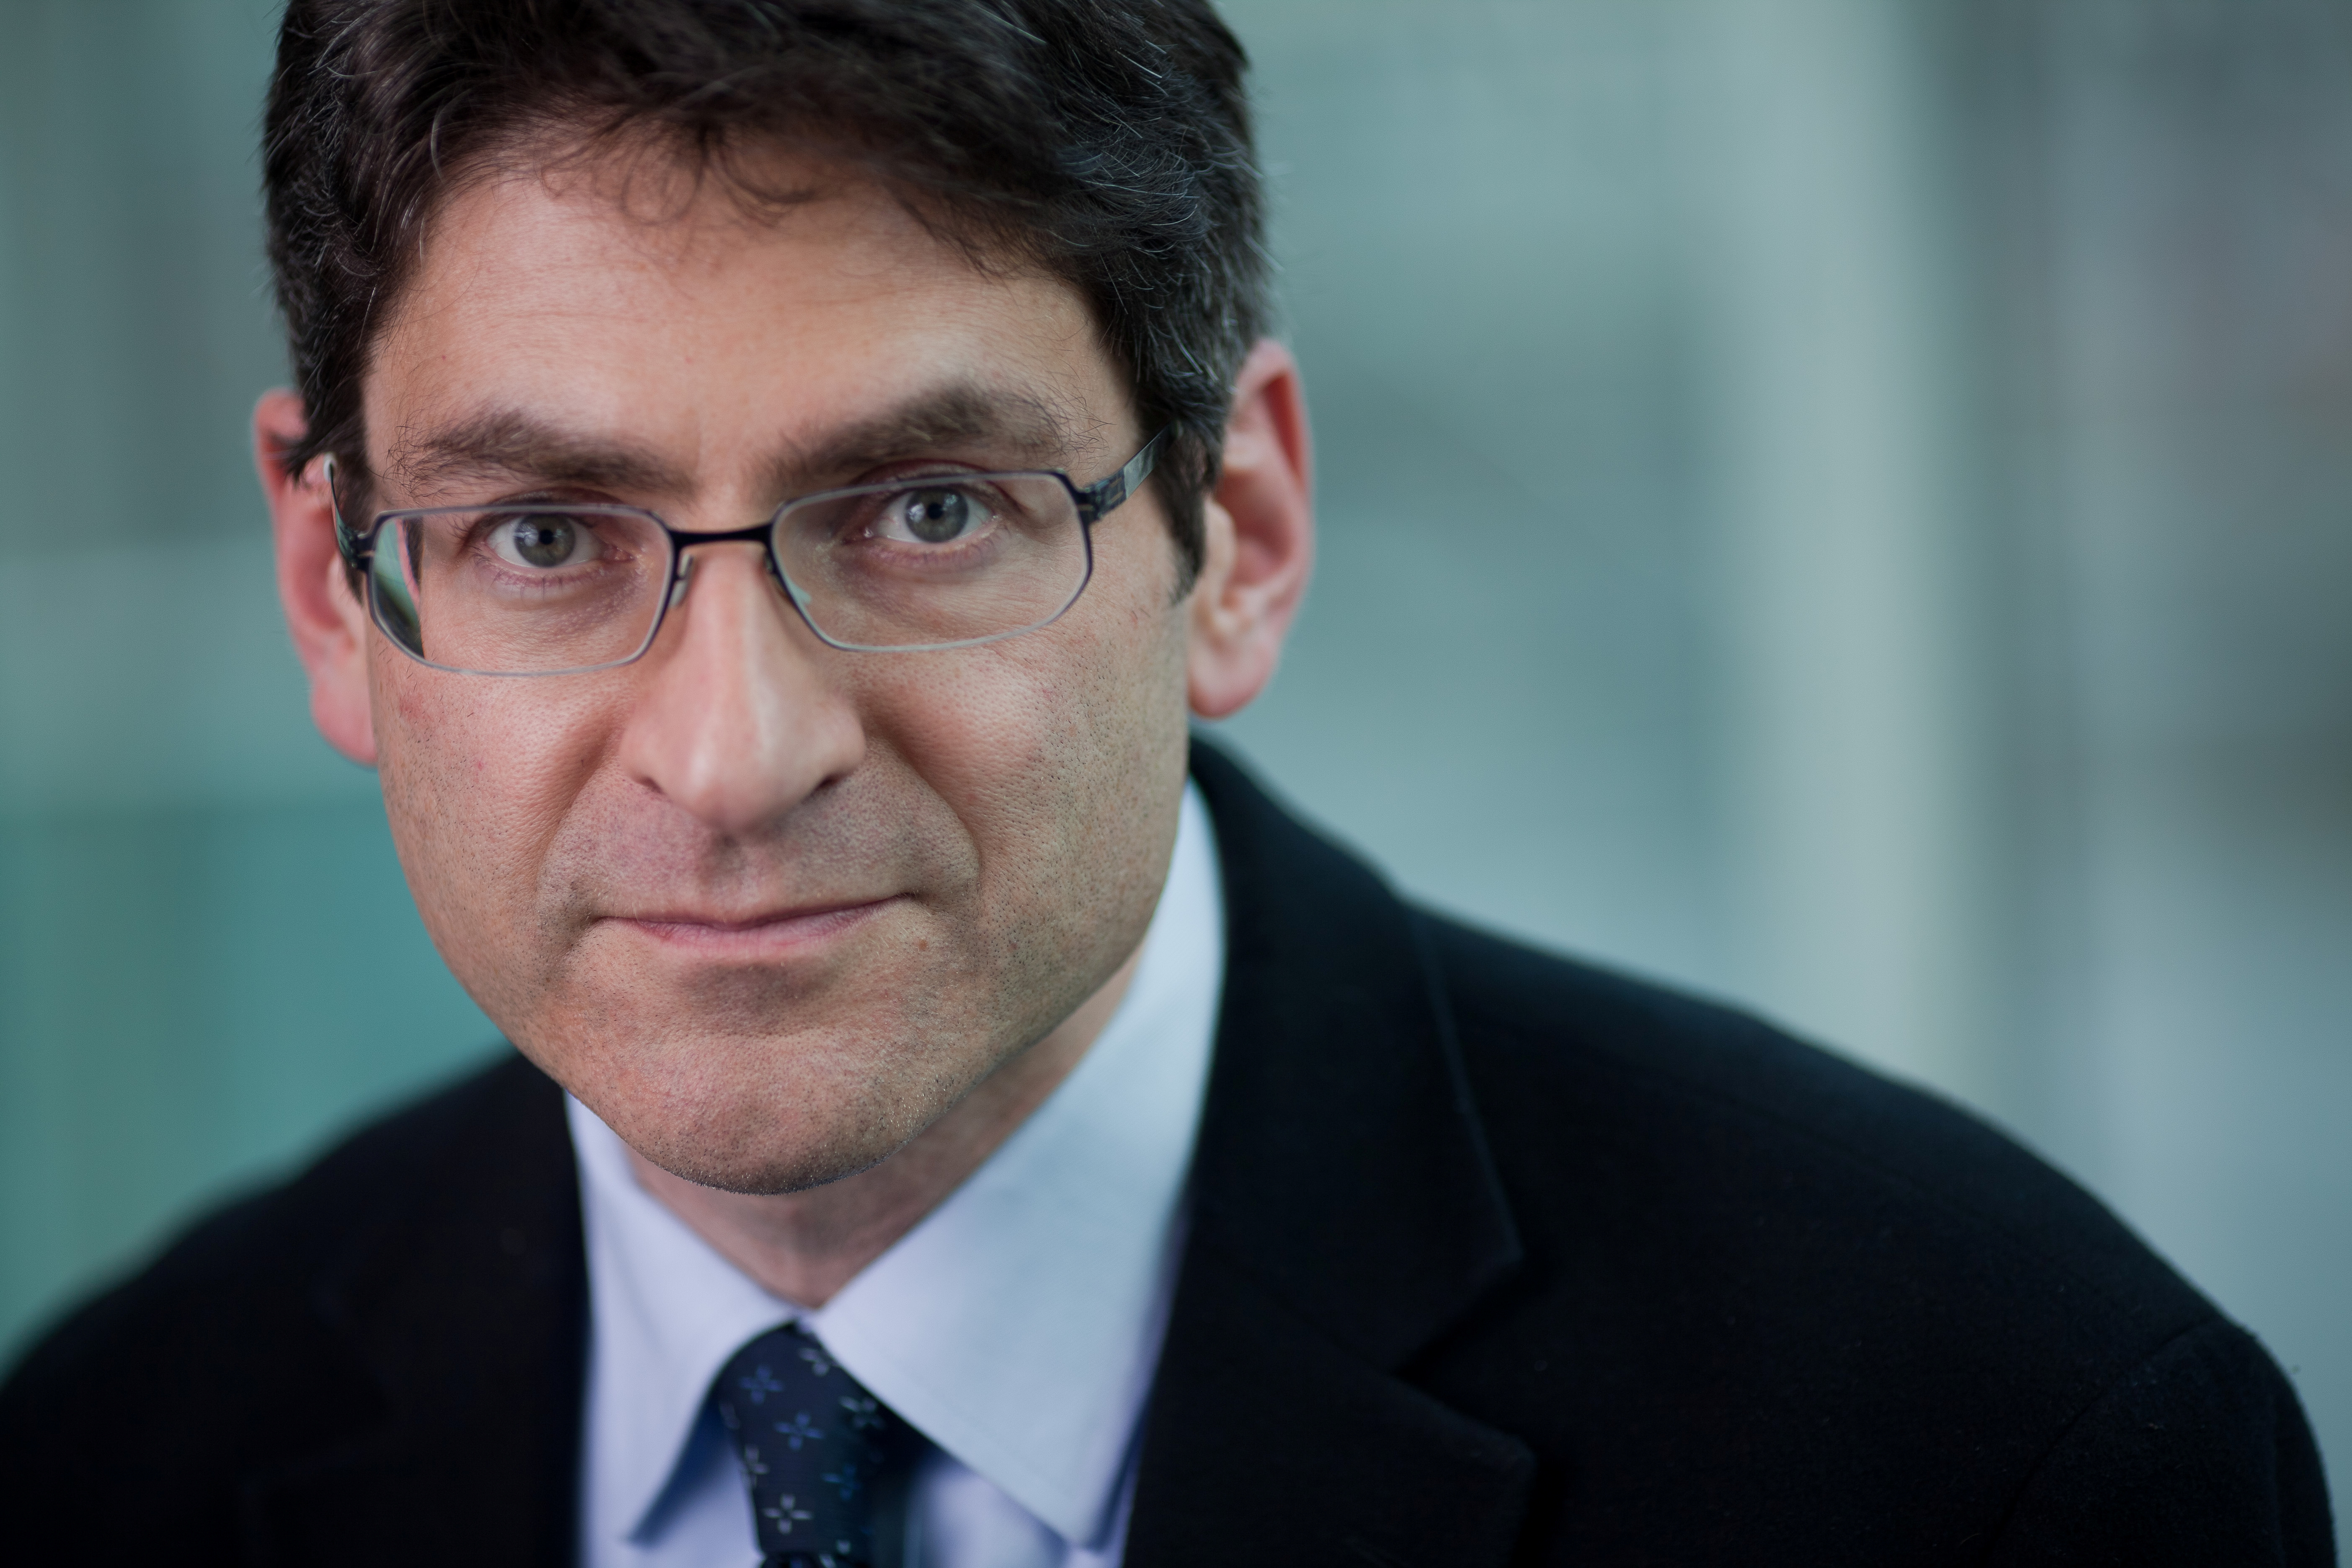 Professor Jonathan Haskel, who has just been appointed to the Monetary Policy Committee of the Bank of England, is seen in this undated portrait released by HM Treasury in London, Britain, May 31, 2018. Jason Alden/UK Treasury/Handout via REUTERS/Files